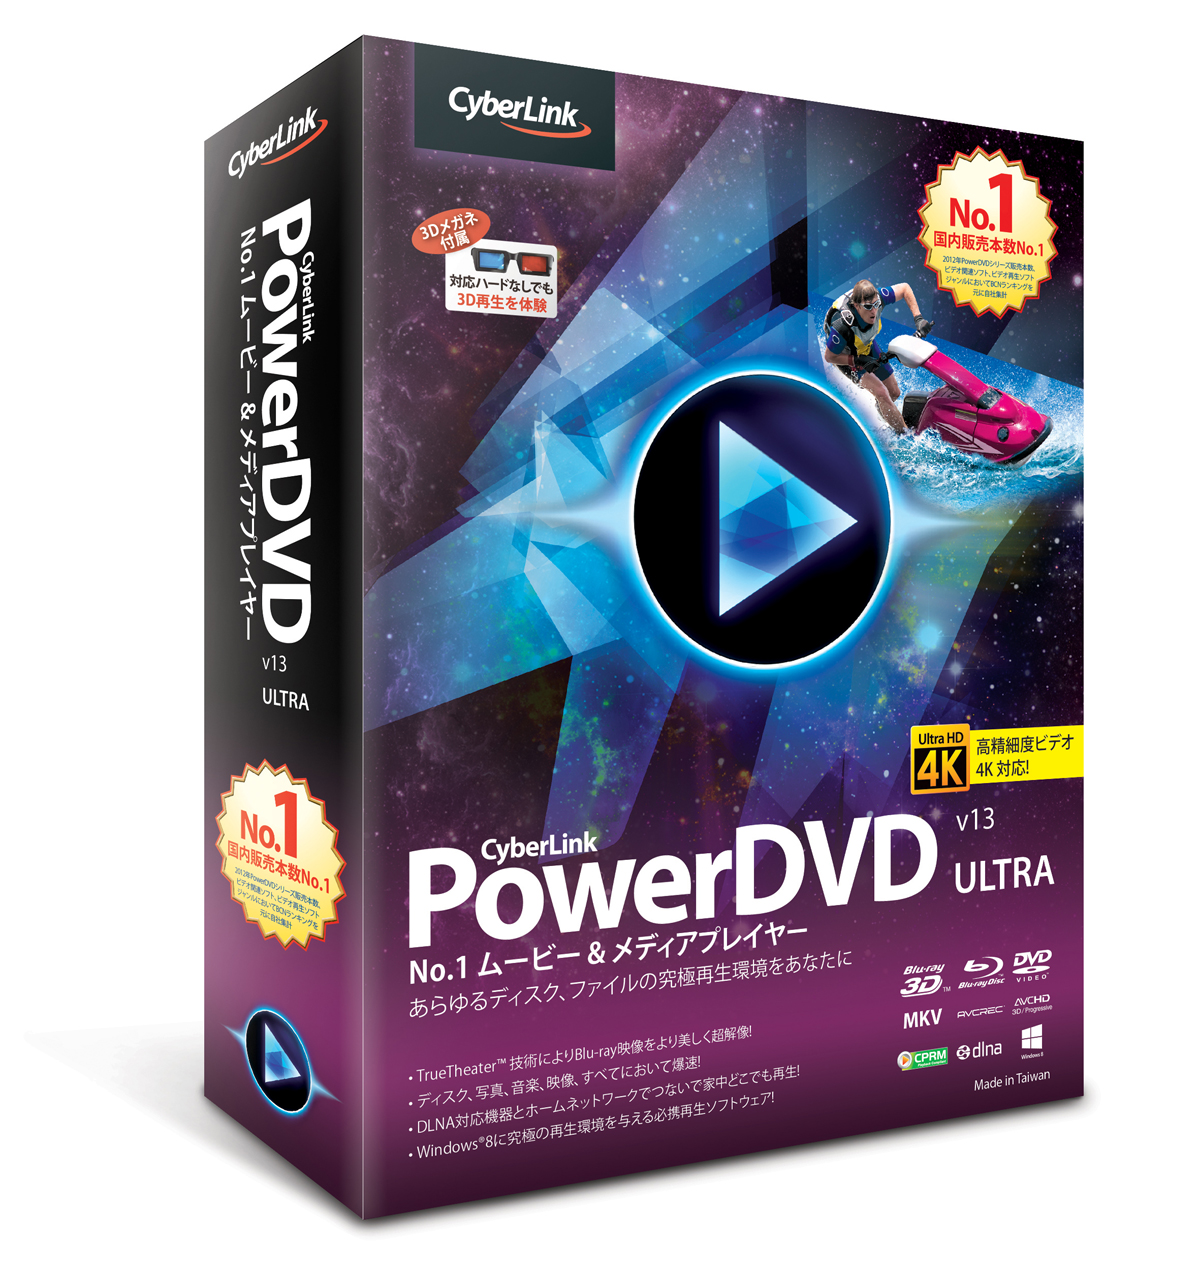 CyberLink PowerDVD Ultra 17.0.2508.62 Crack Full Version